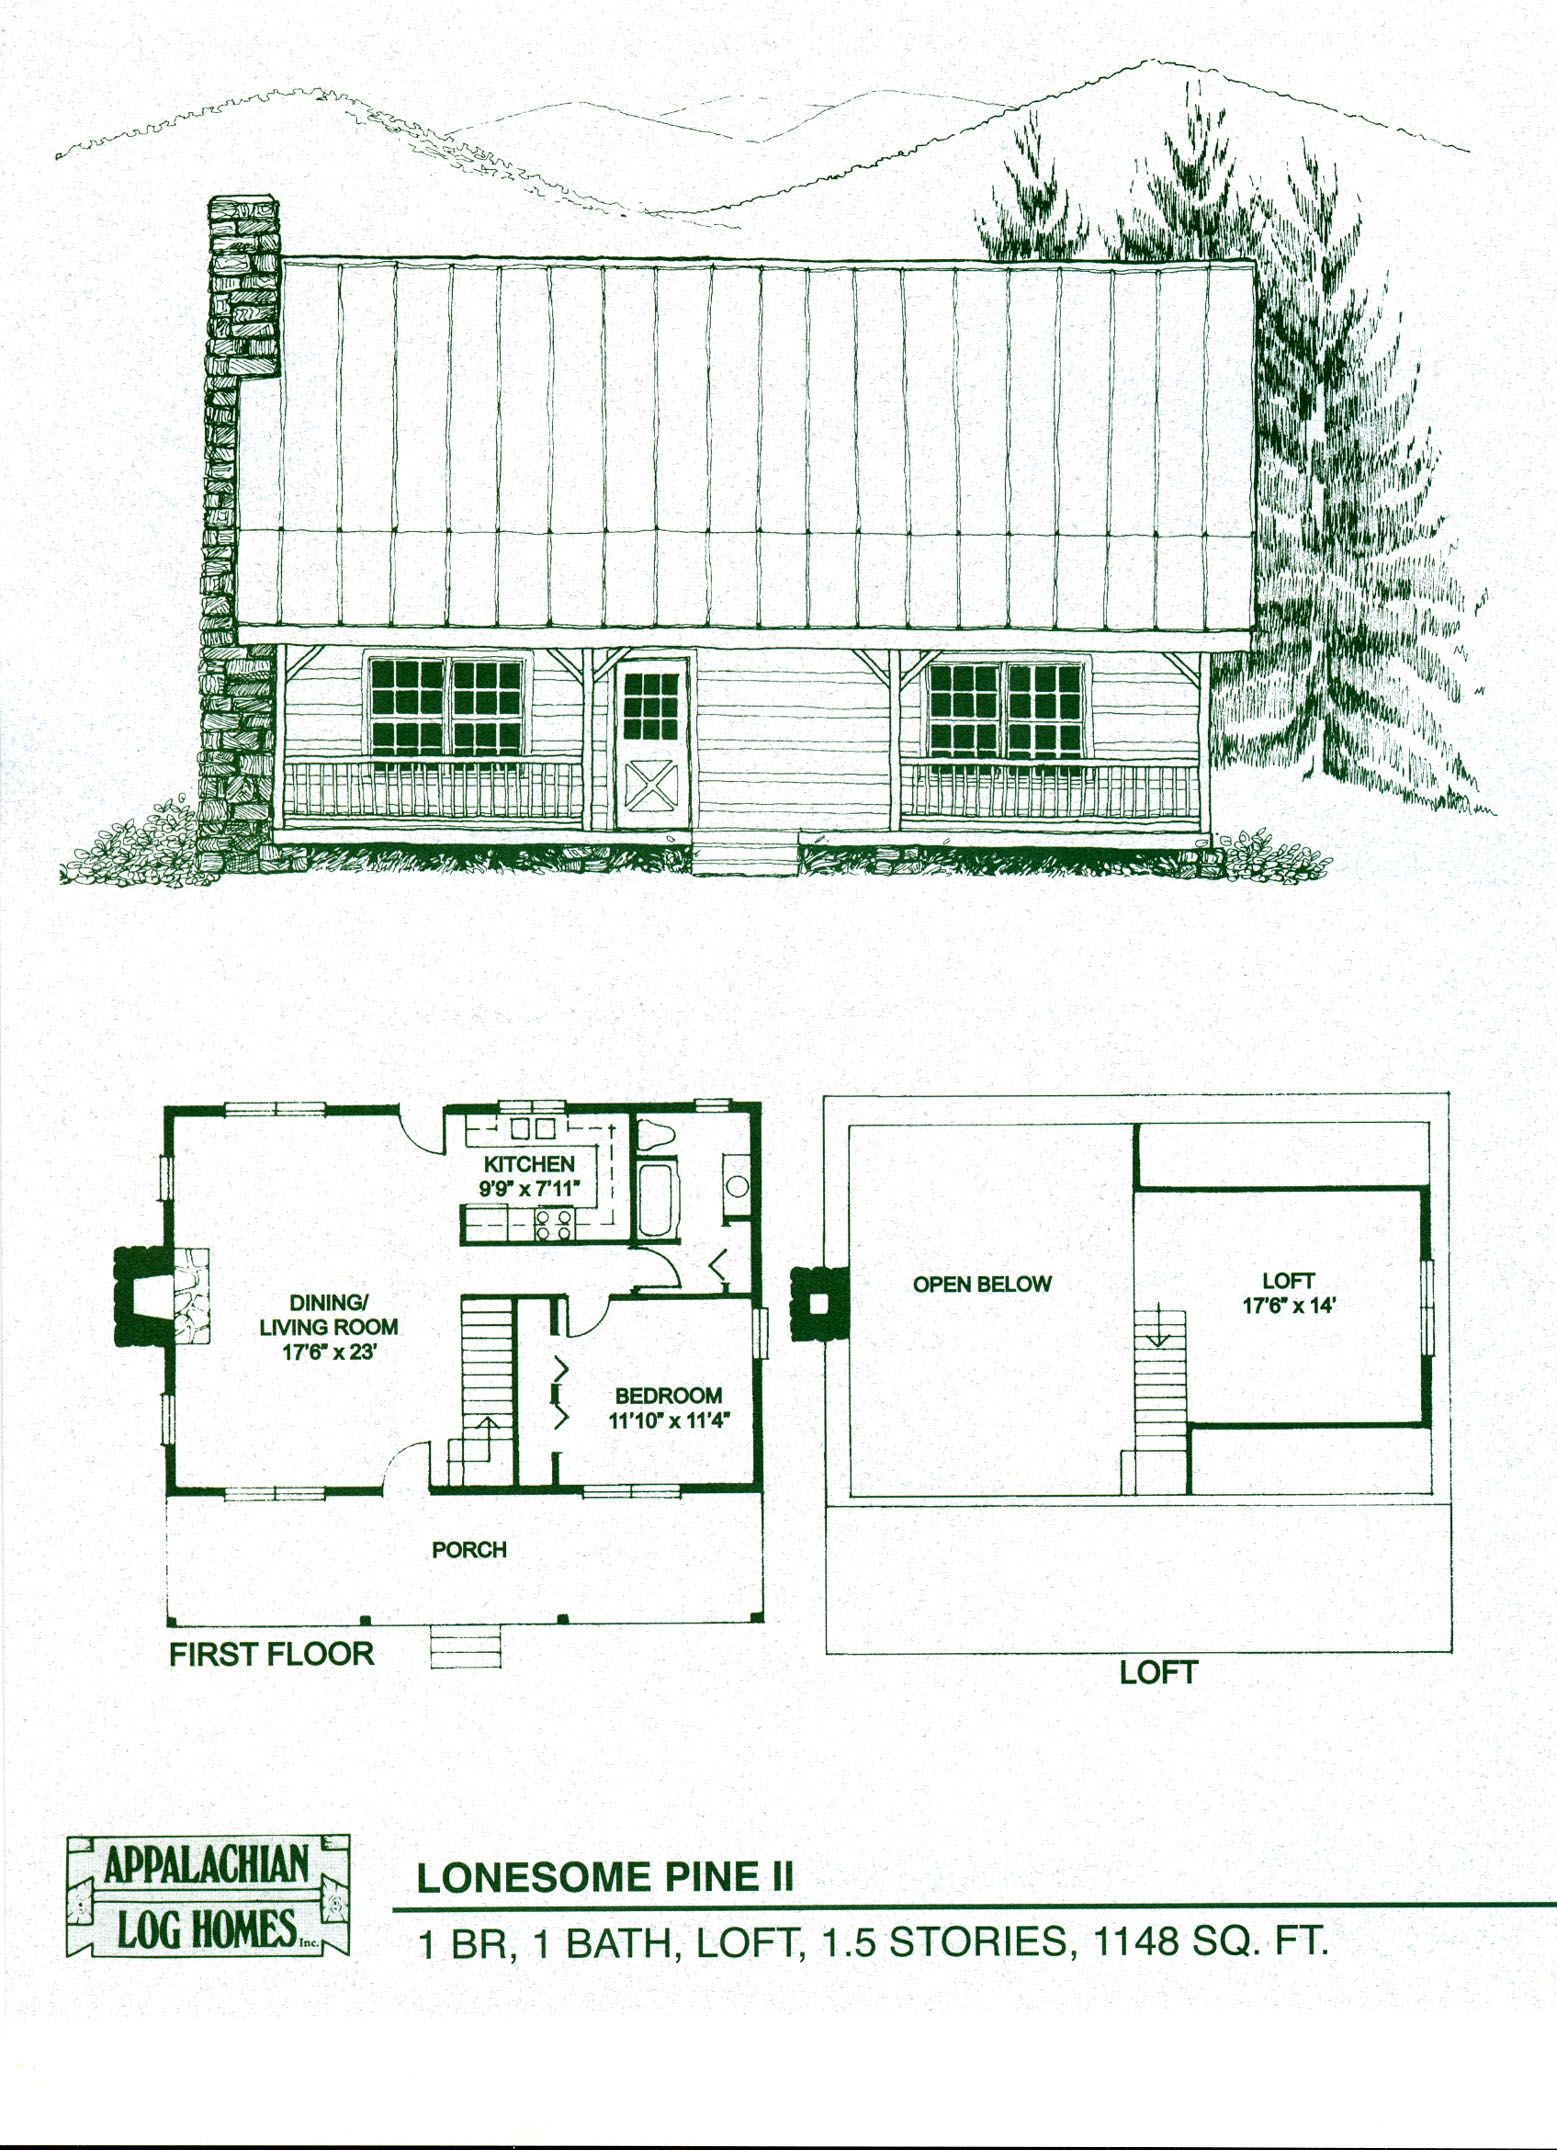 Log Home Floor Plans - Log Cabin Kits - Appalachian Log Homes ...